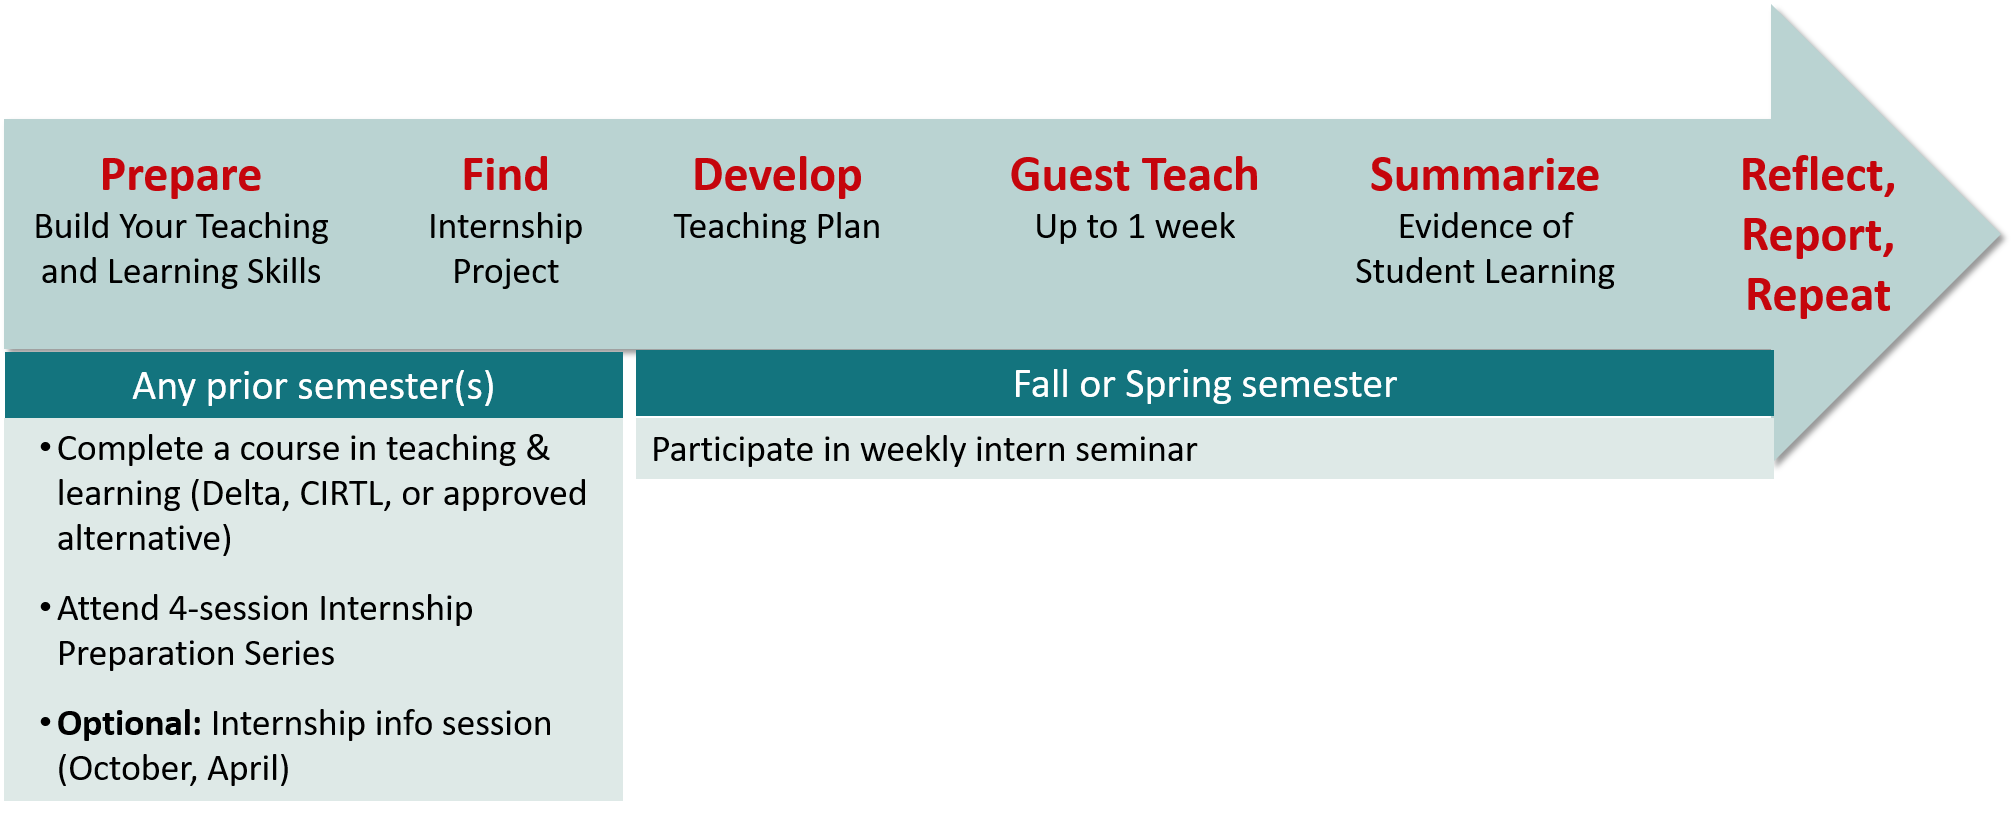 Alt text: Timeline of process, including taking the pre-requisite courses, developing a teaching plan, guest teaching, summarizing, and reporting. Specifics are detailed in the text below.